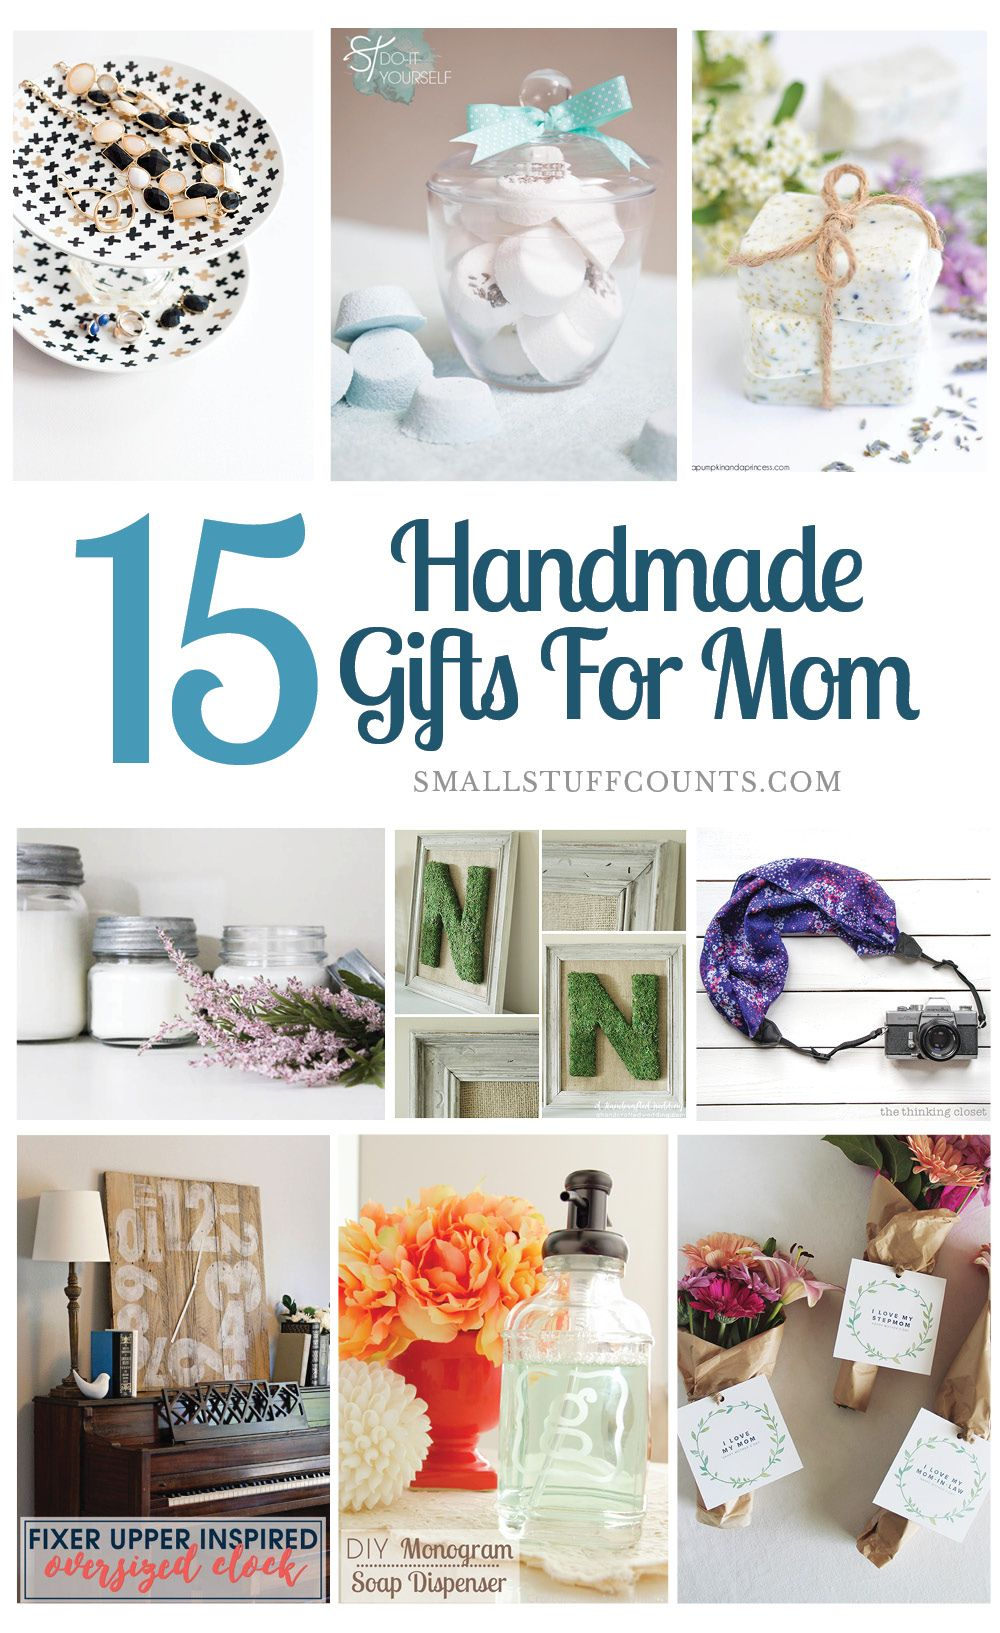 diy photo gifts for mom